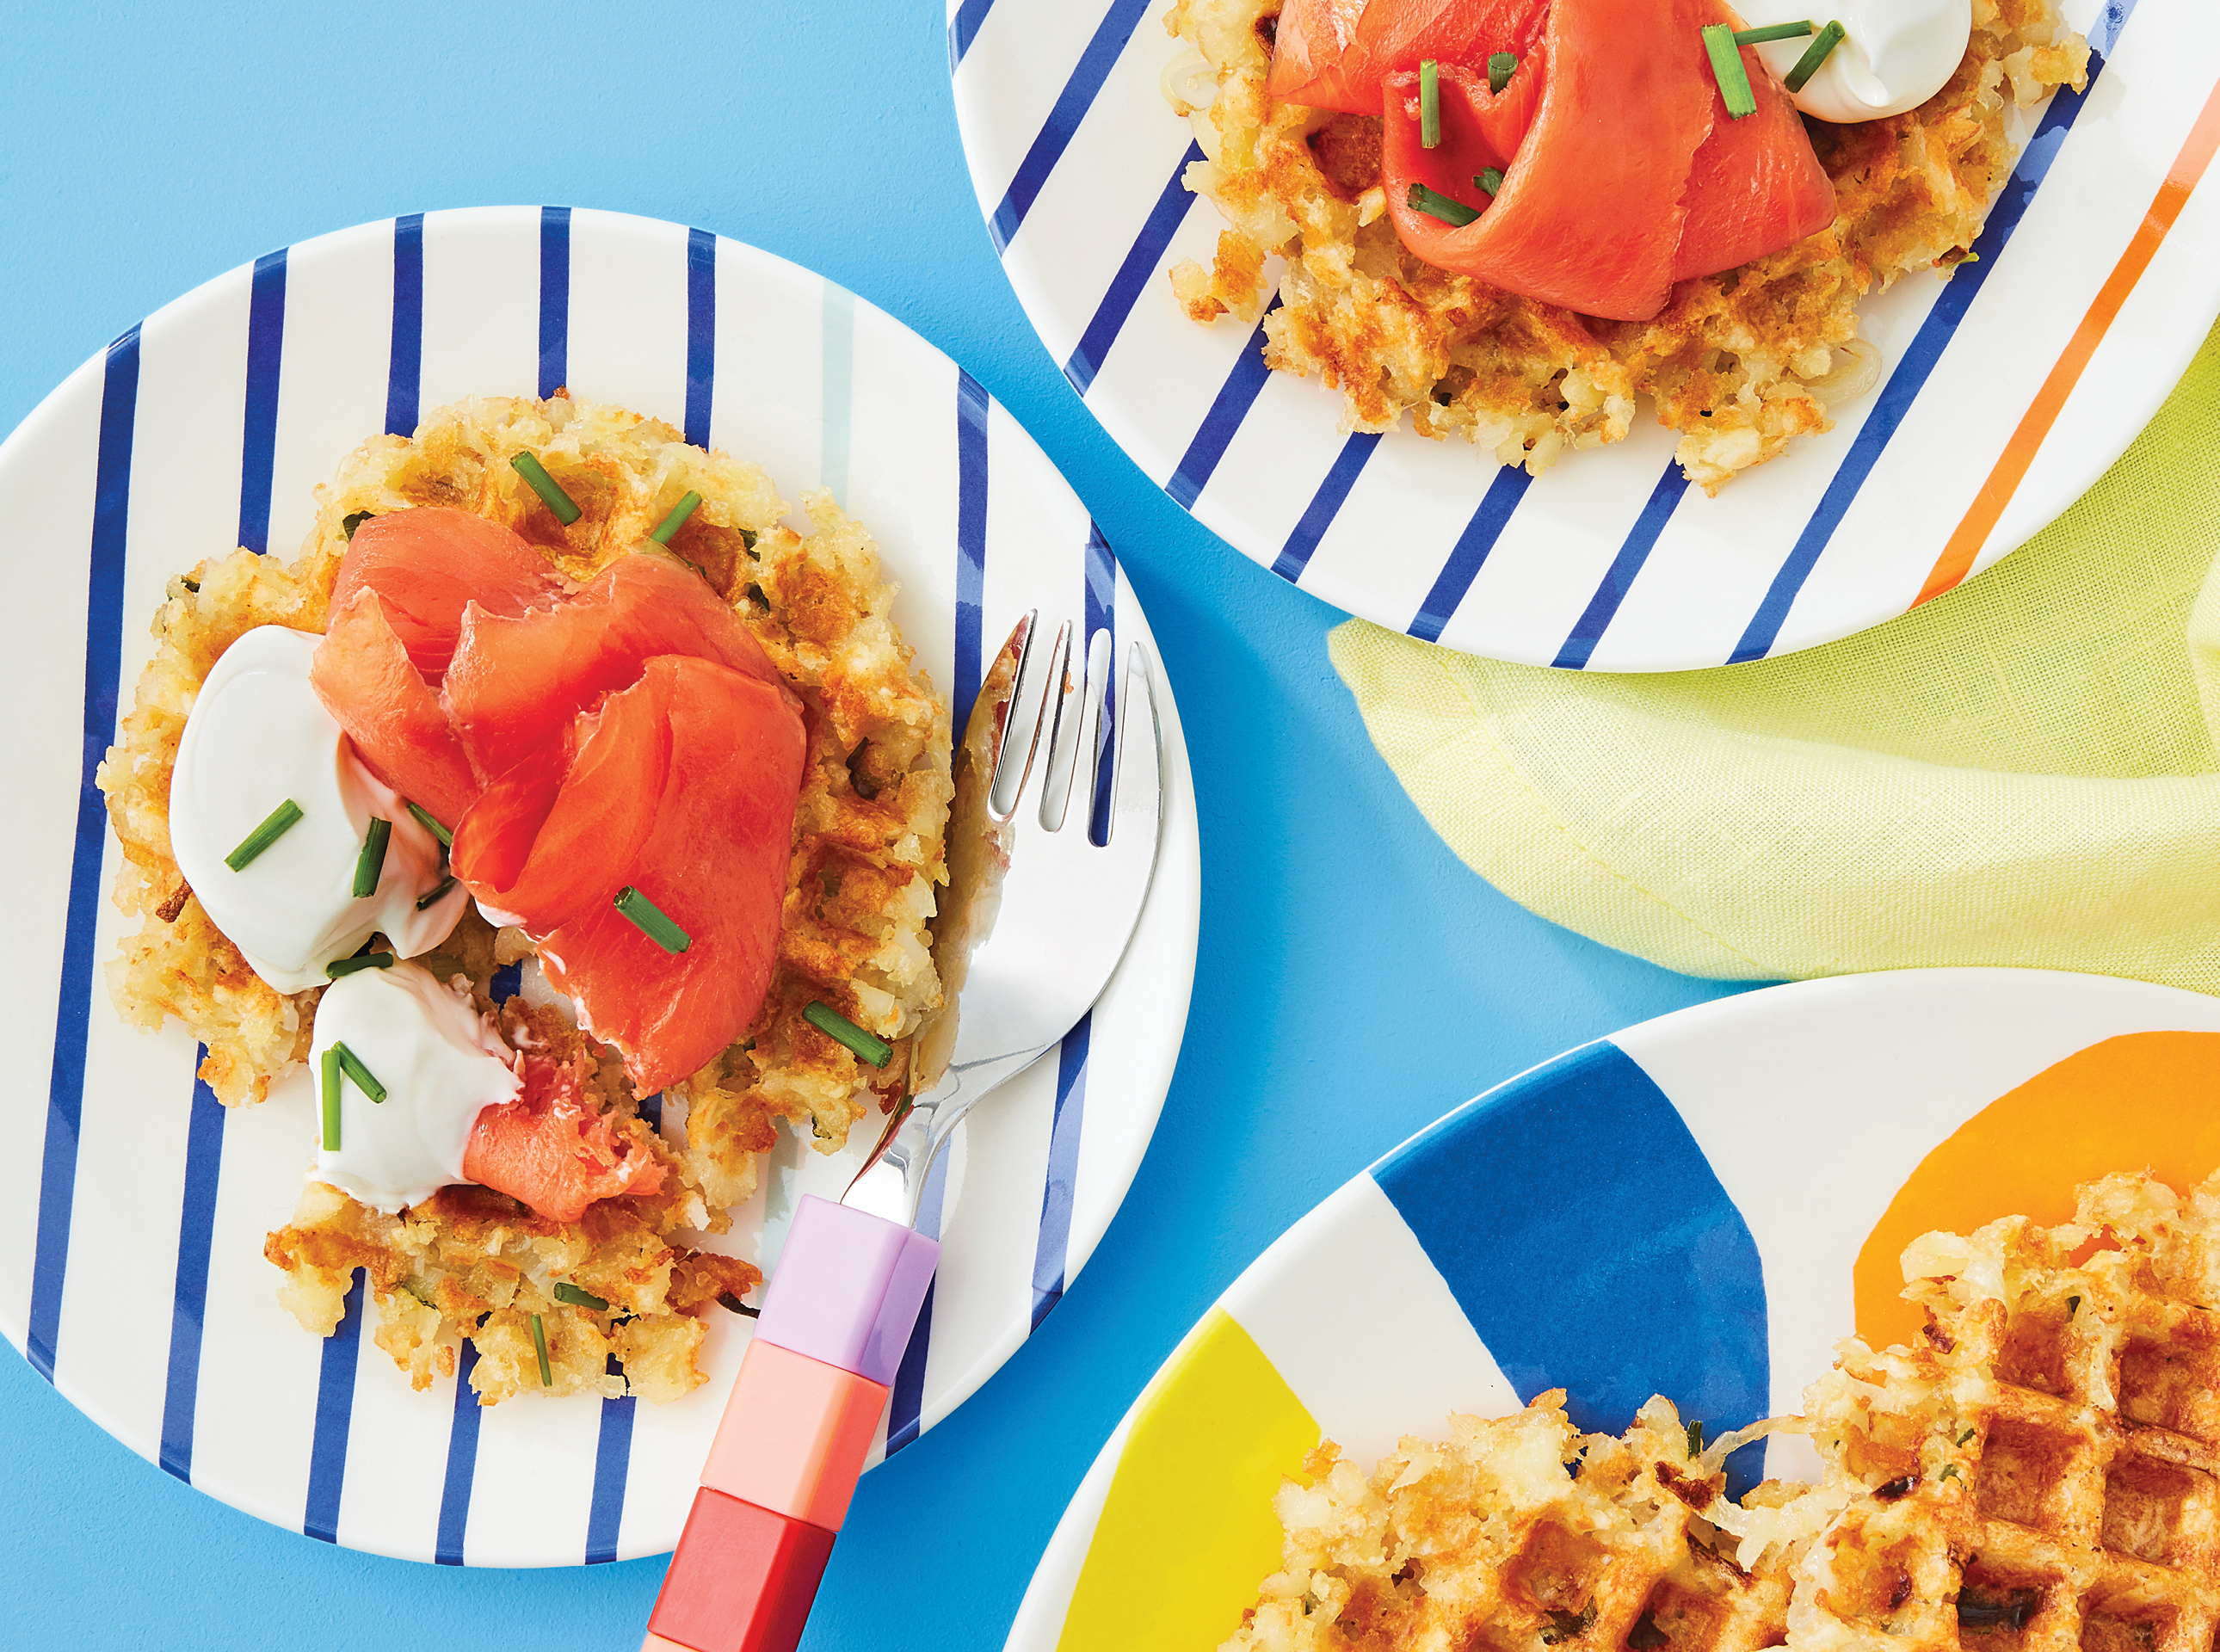 Hash-brown waffles with smoked salmon and sour cream